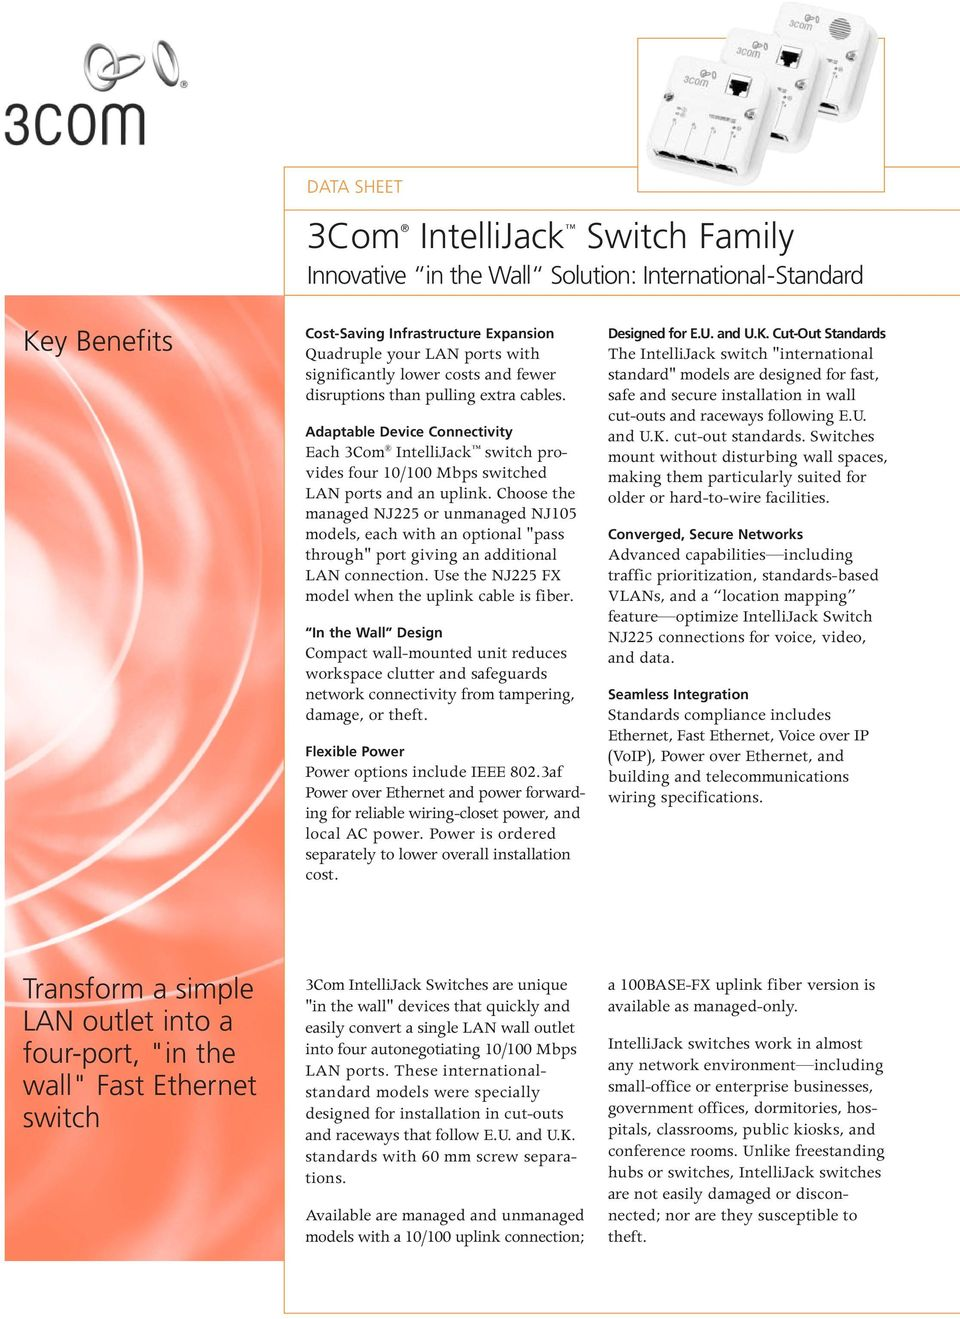 3Com IntelliJack Switch Family Innovative in the Wall